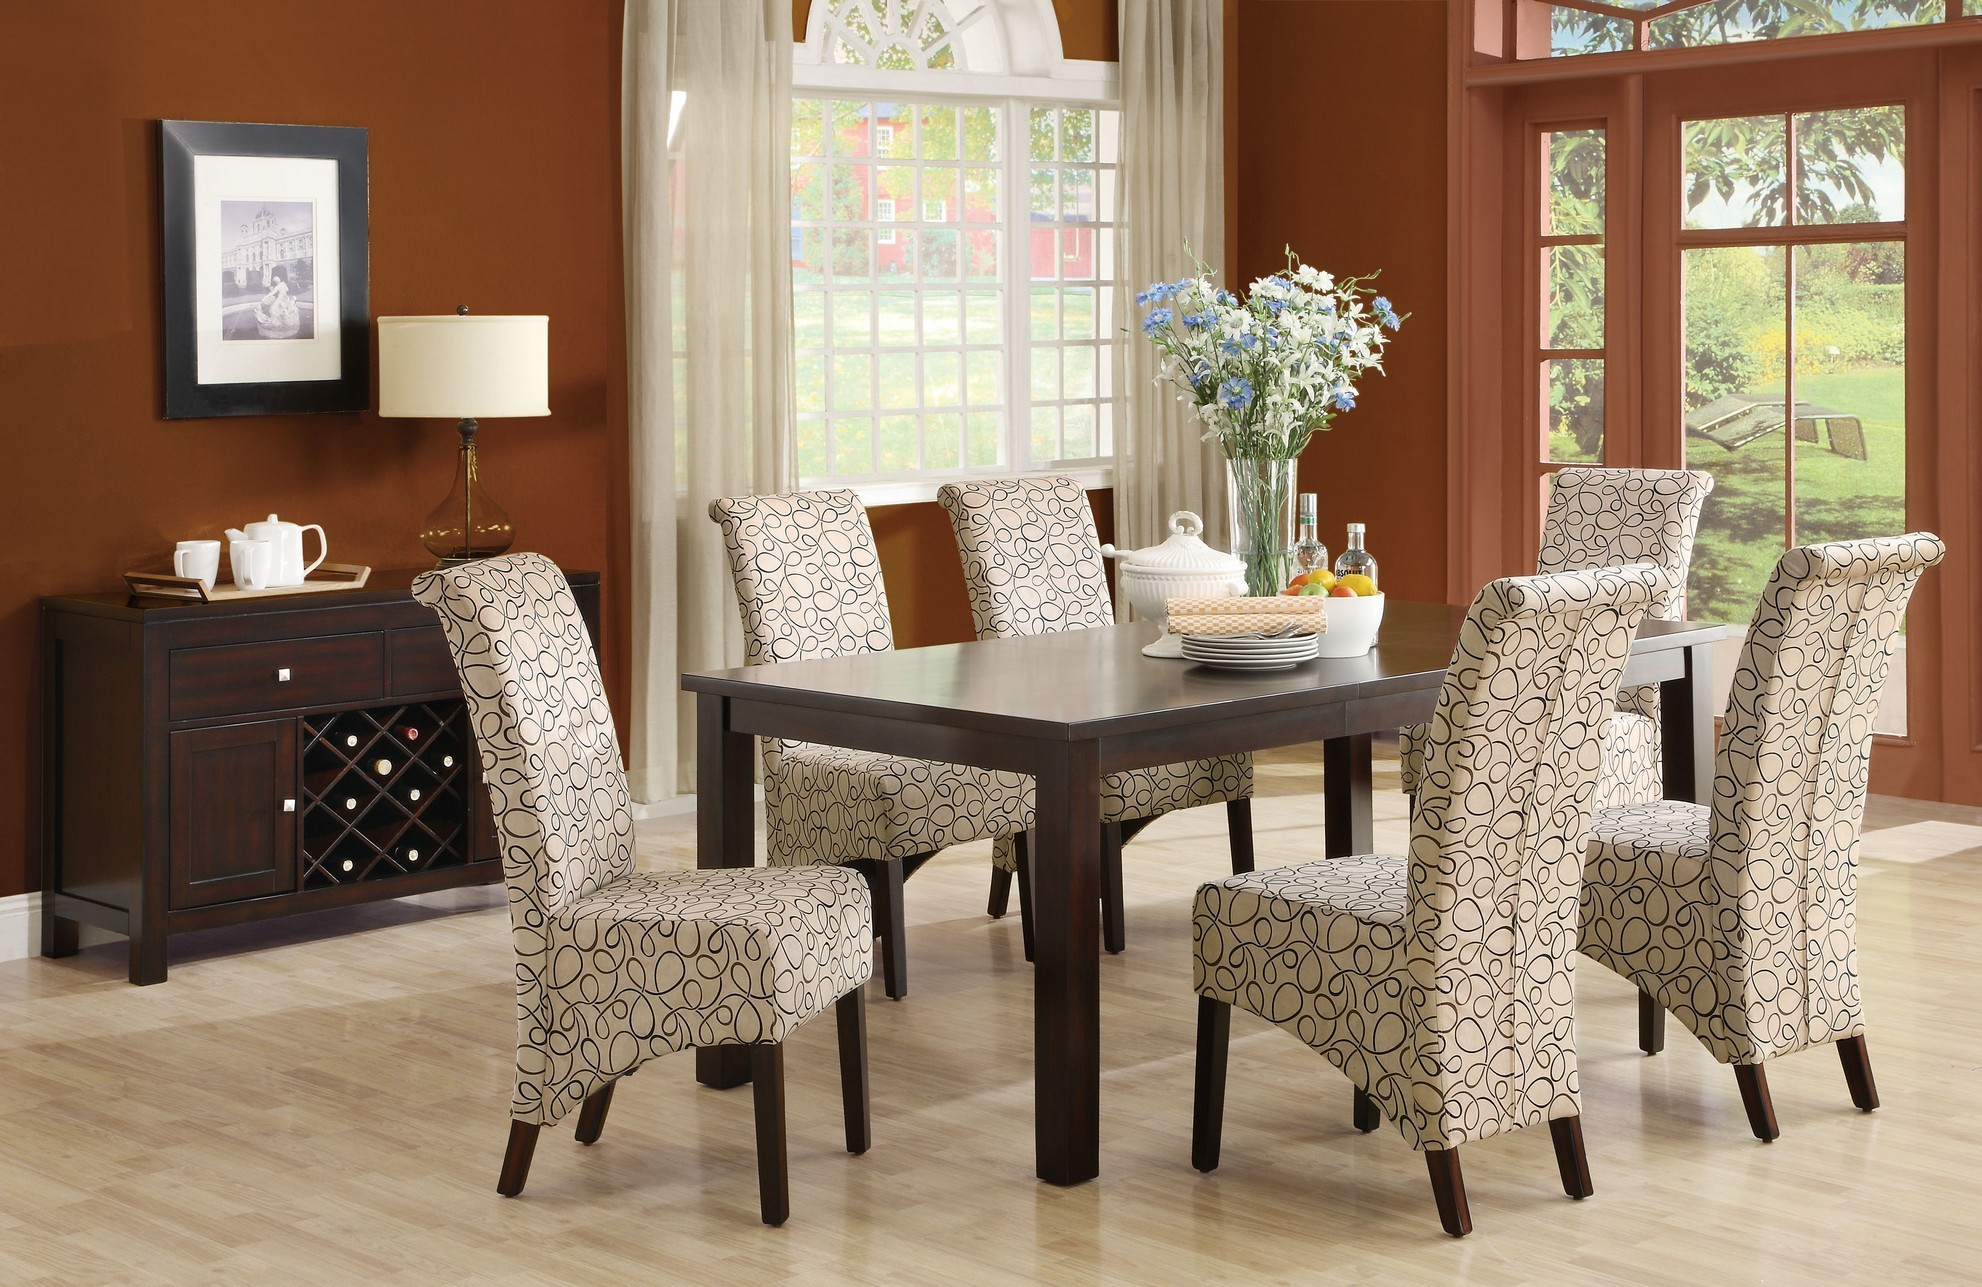 Image of: upholstered dining chair ideas